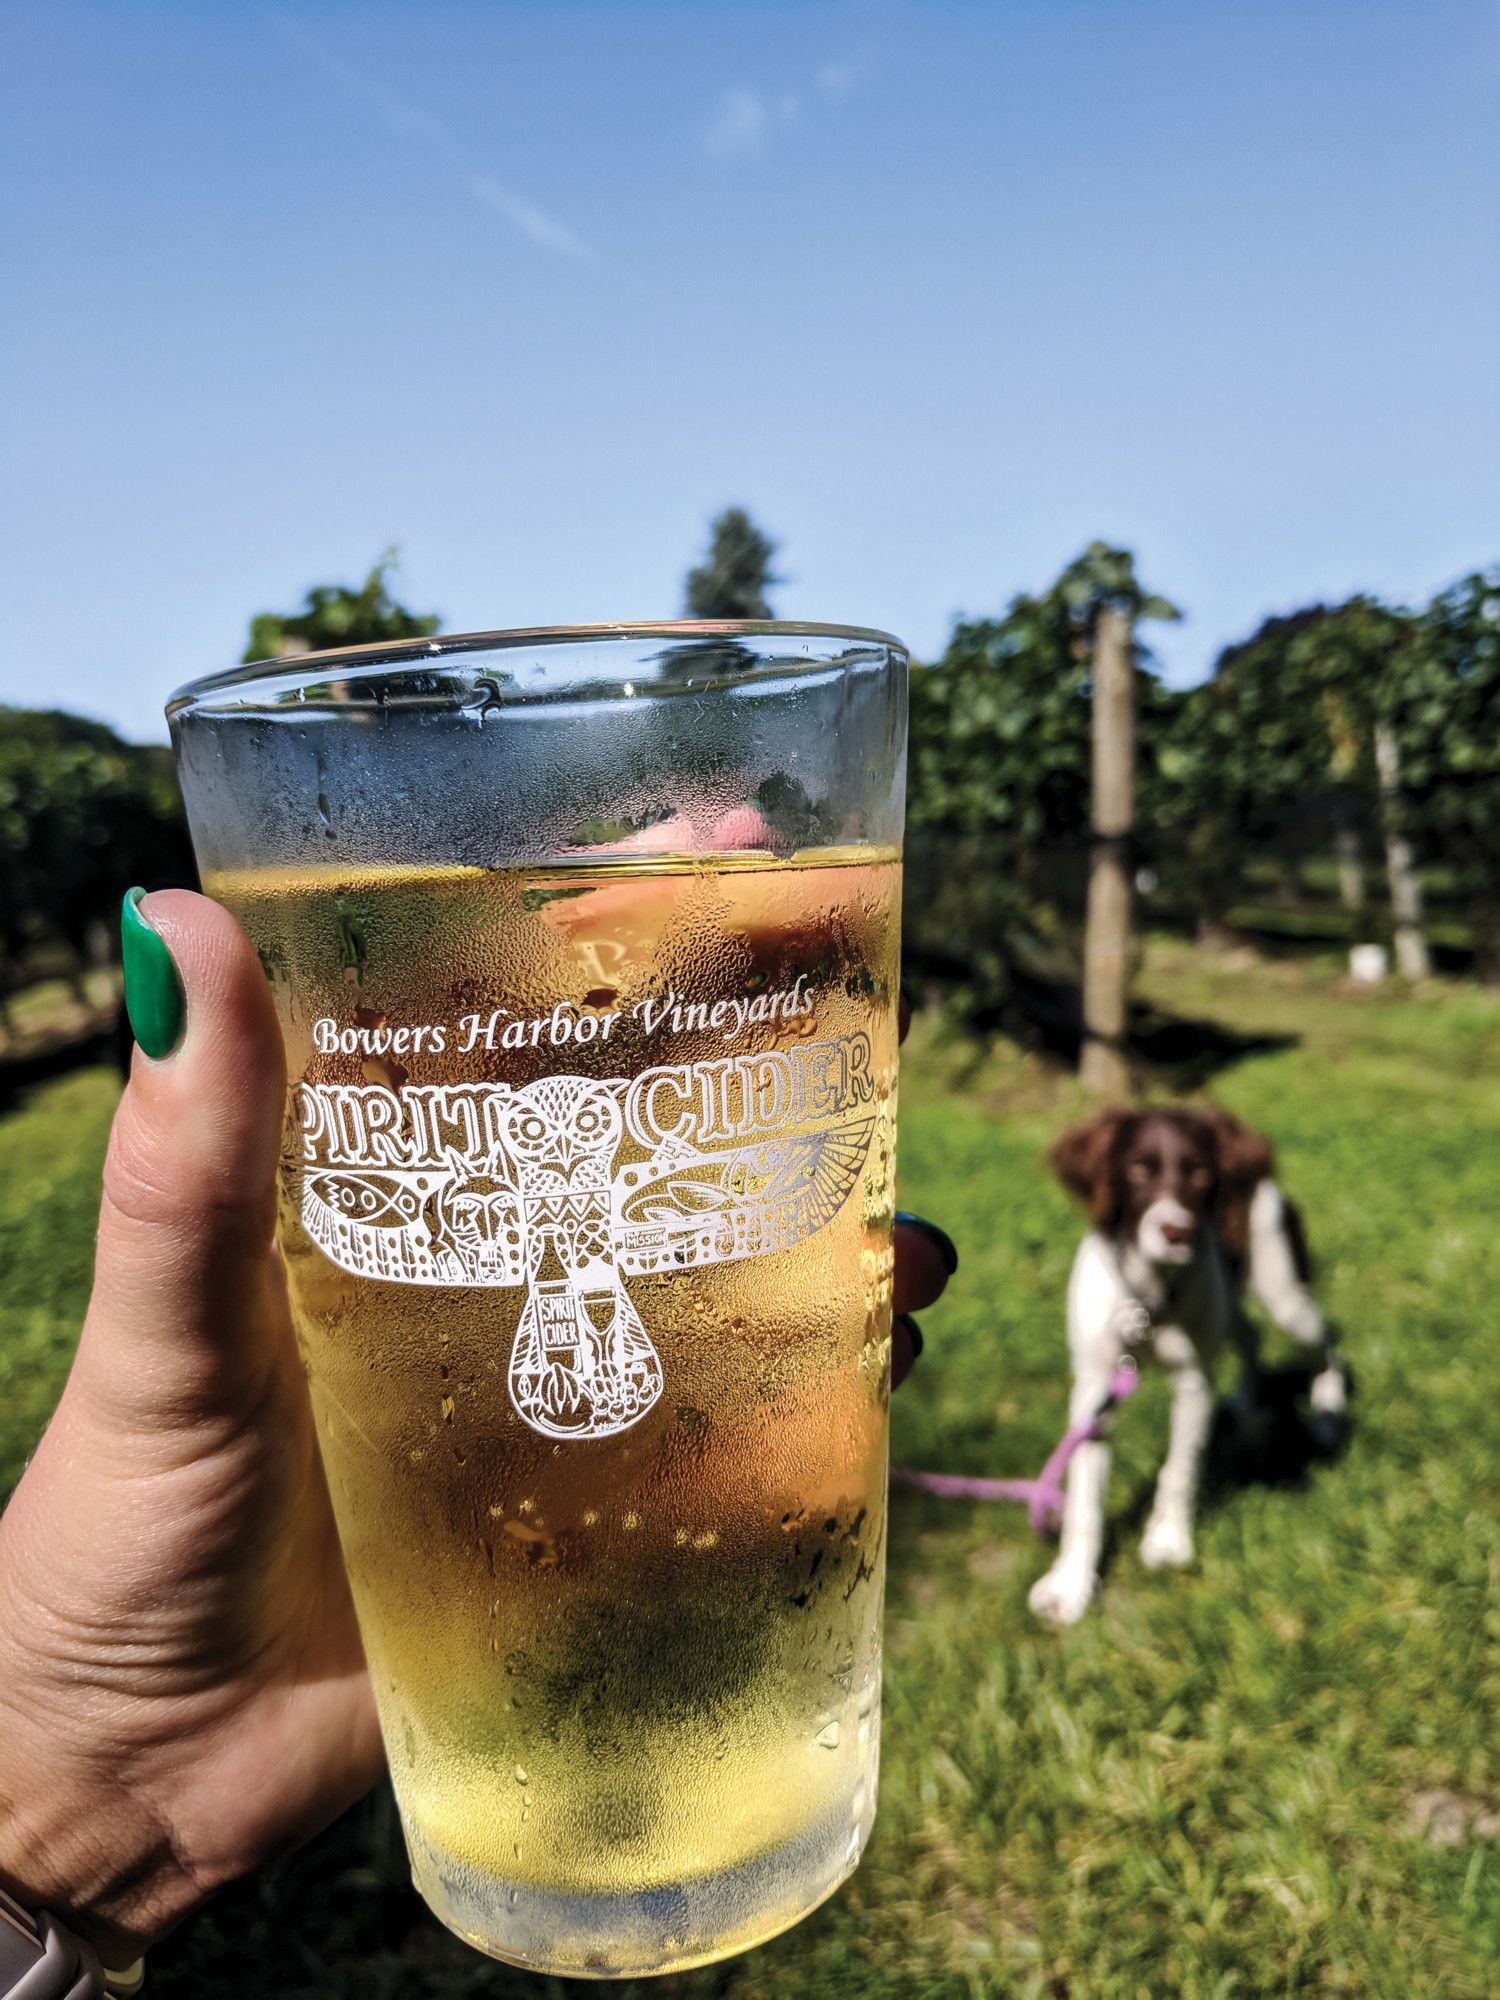 A pint of cider at Bower's Harbor Vineyards with a dog in the background.